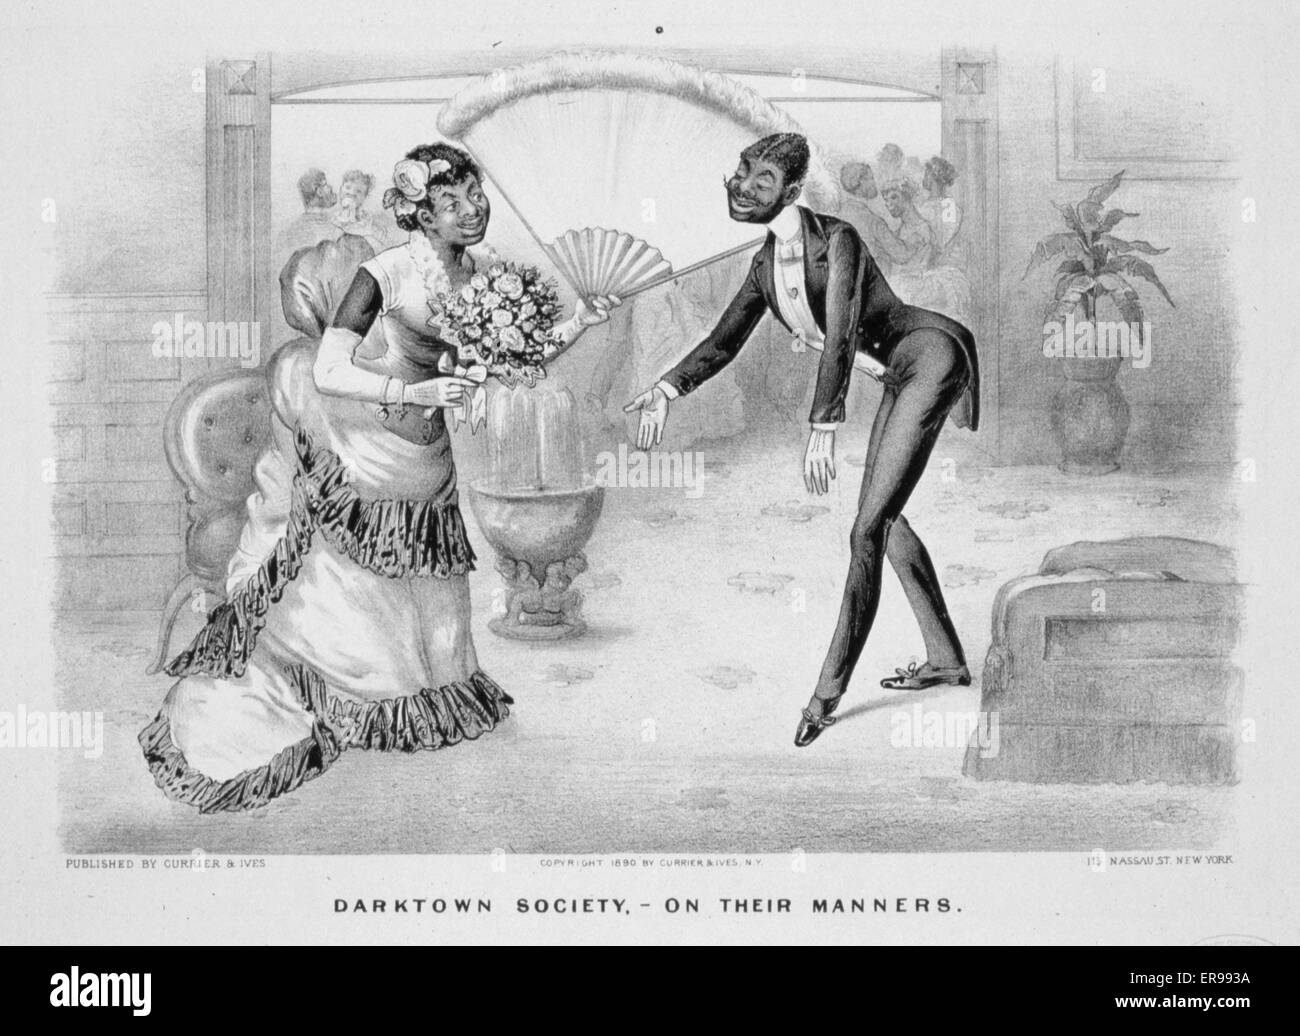 Darktown sports-a grand spurt: I'll beat dat ole pelter, or bust!. Date 1885,. - Stock Image